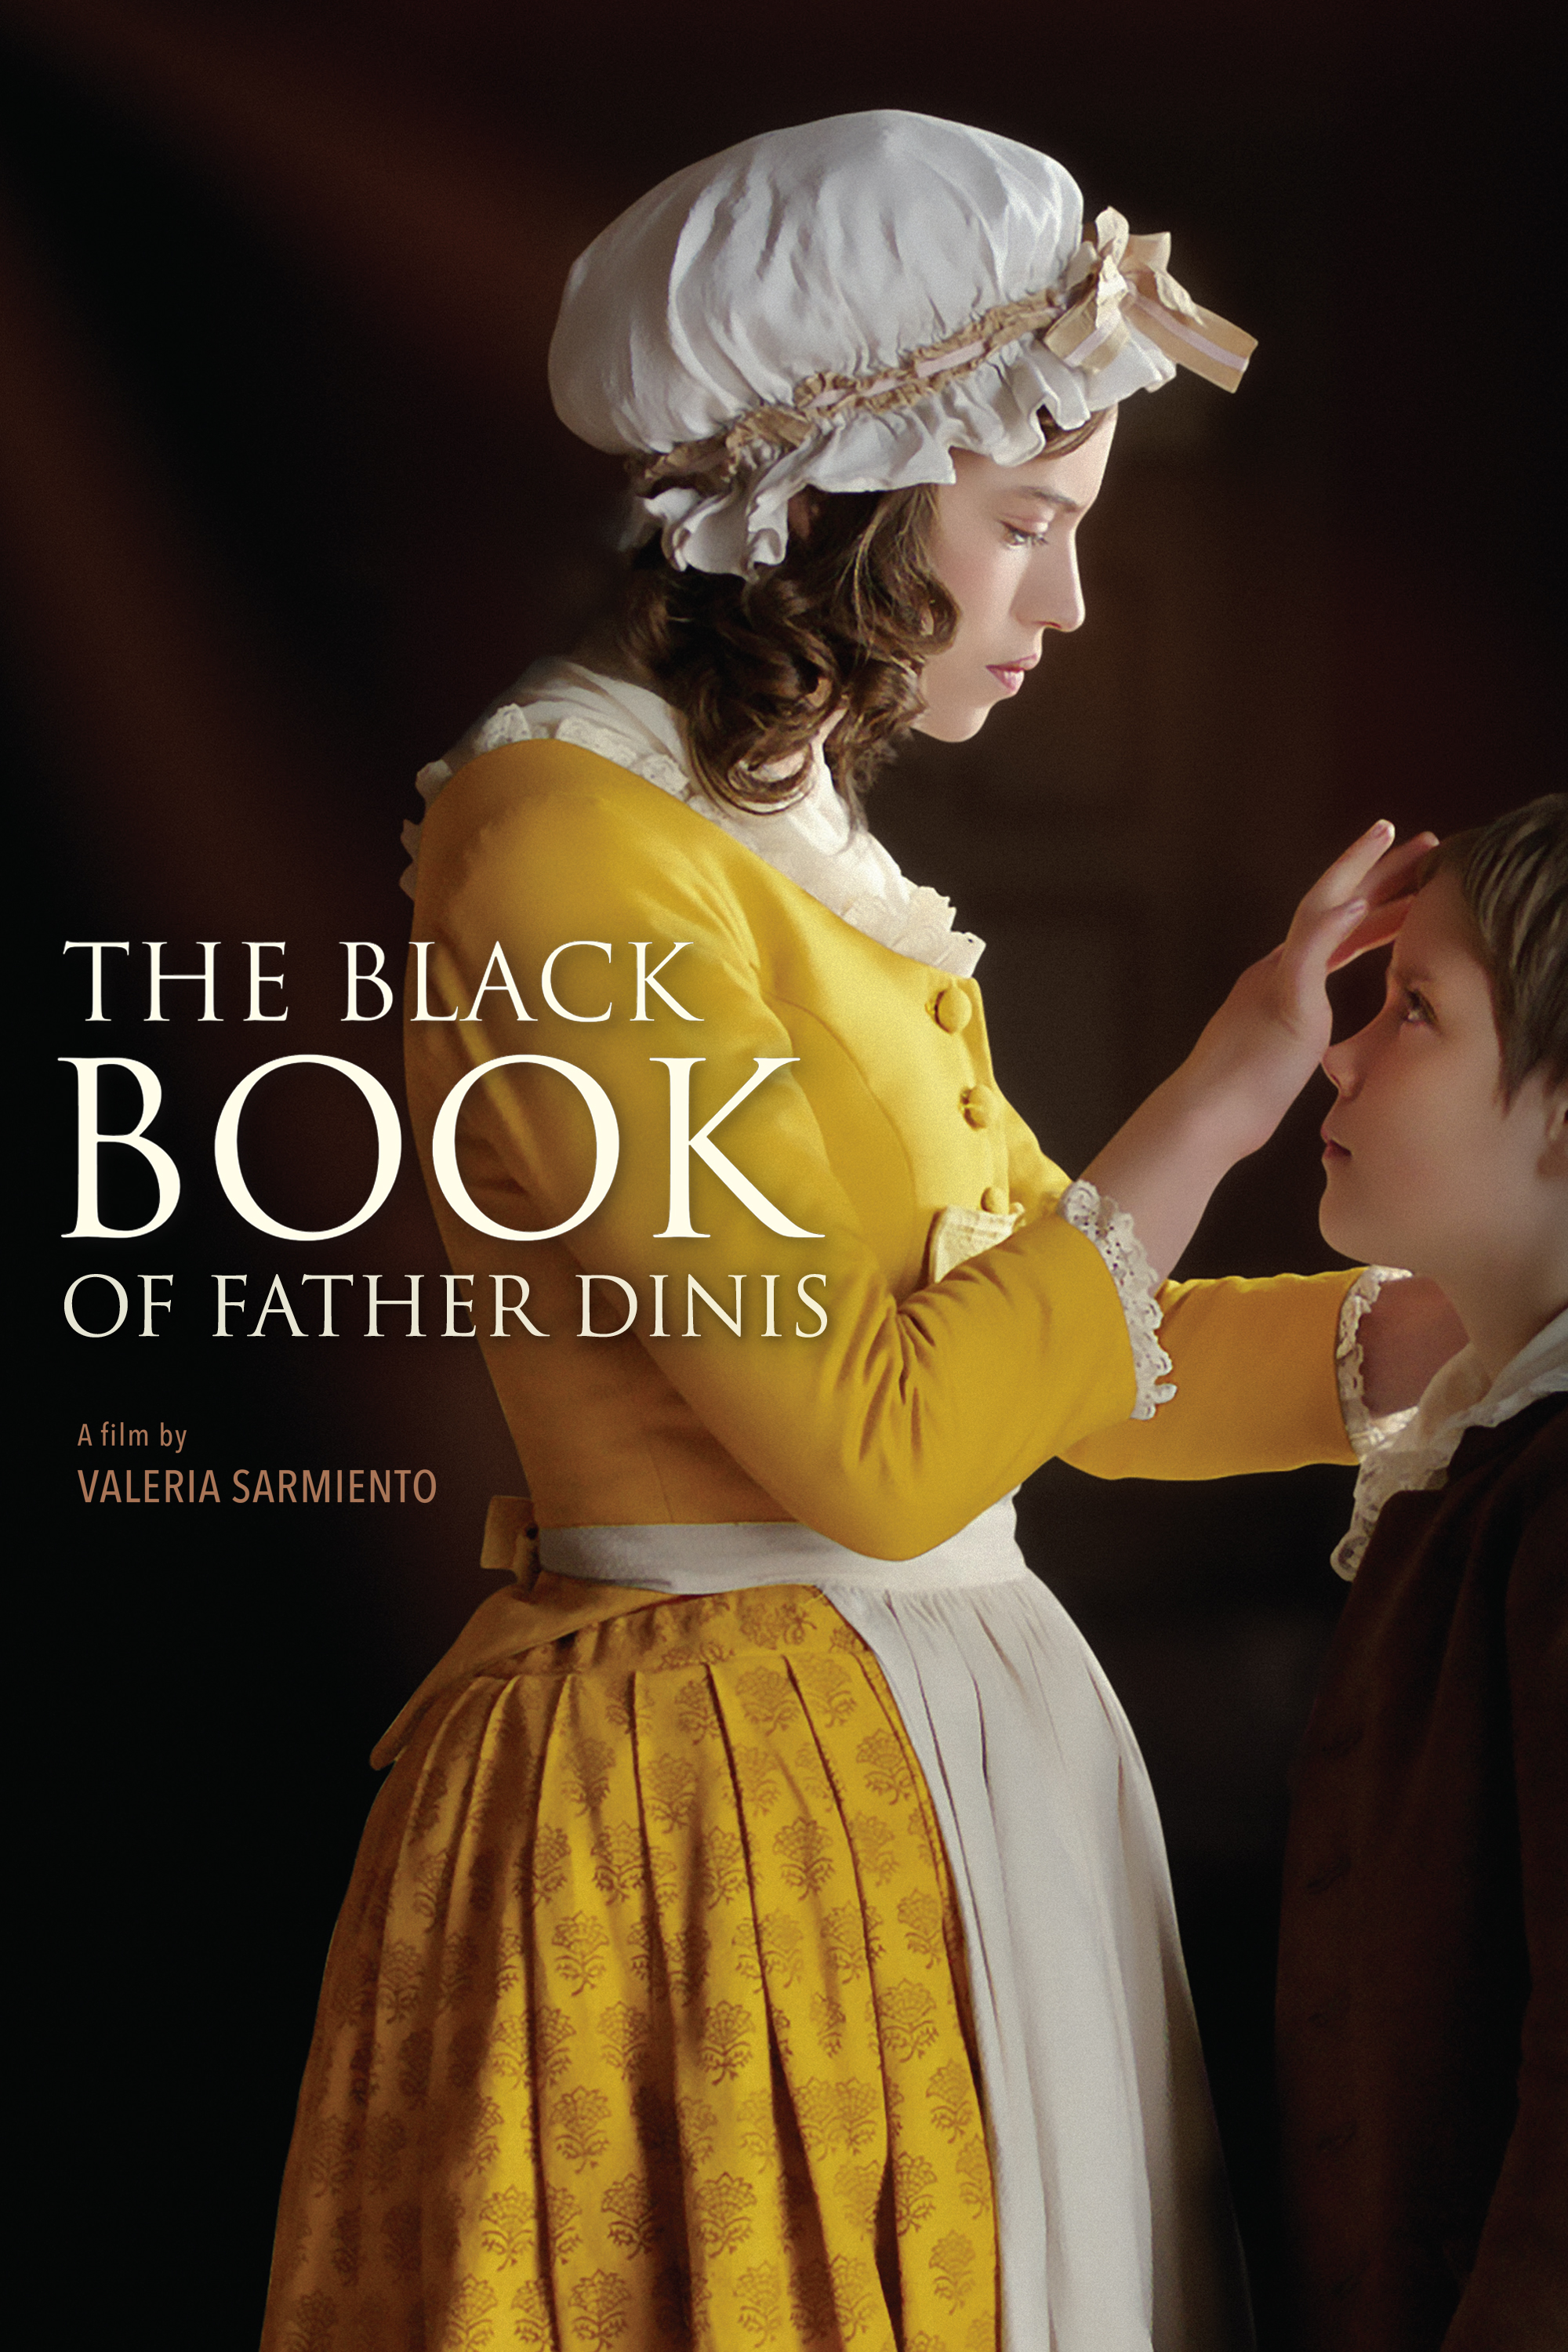 The Black Book of Father Dinis